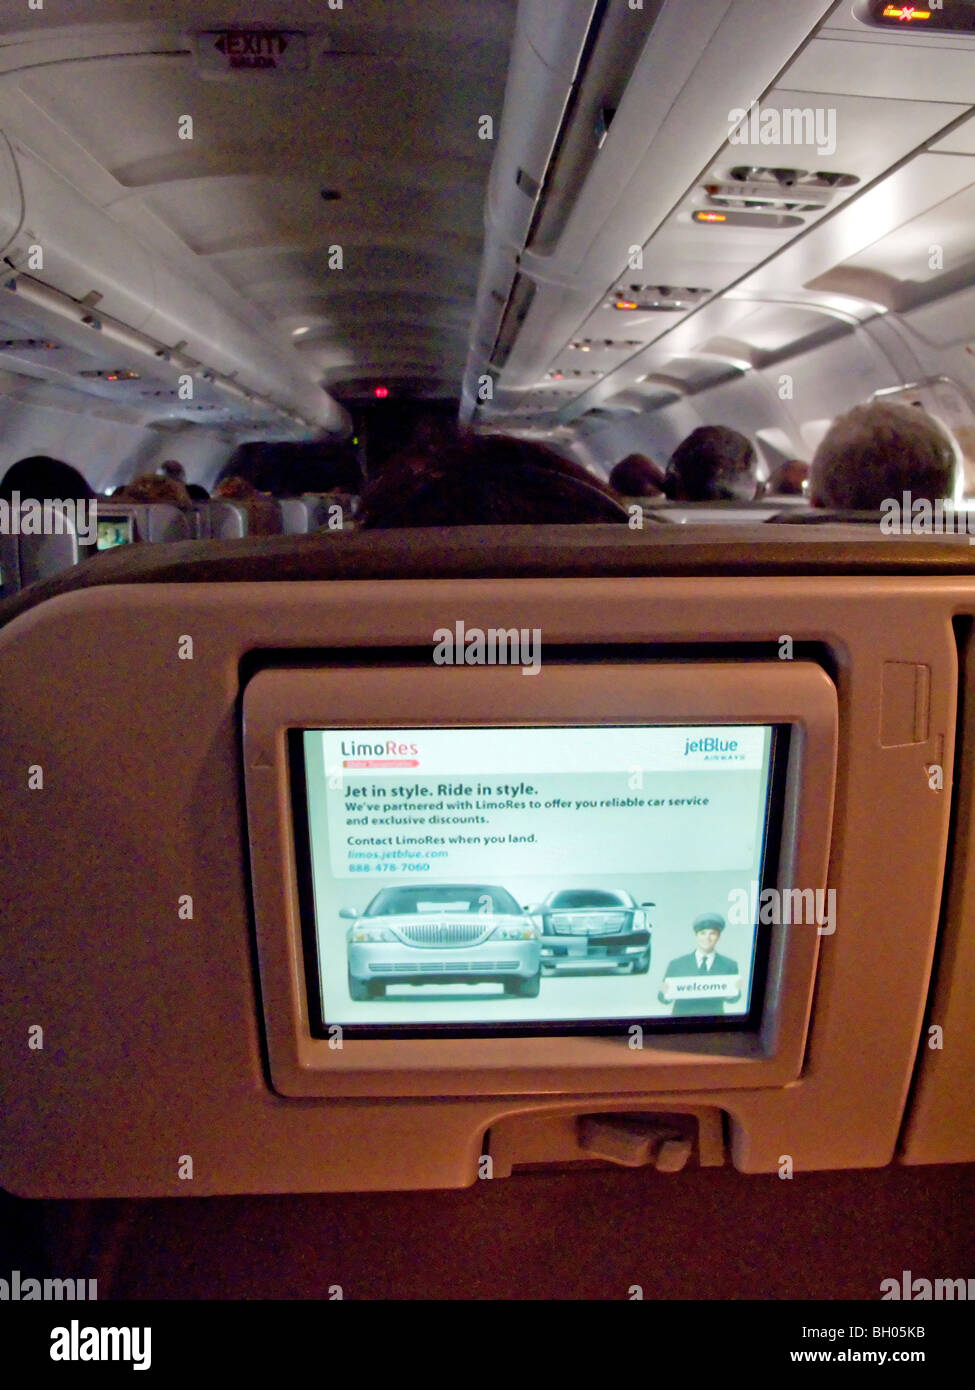 In-flight television entertainment for airline passengers' enjoyment on individual screens at their seats includes - Stock Image